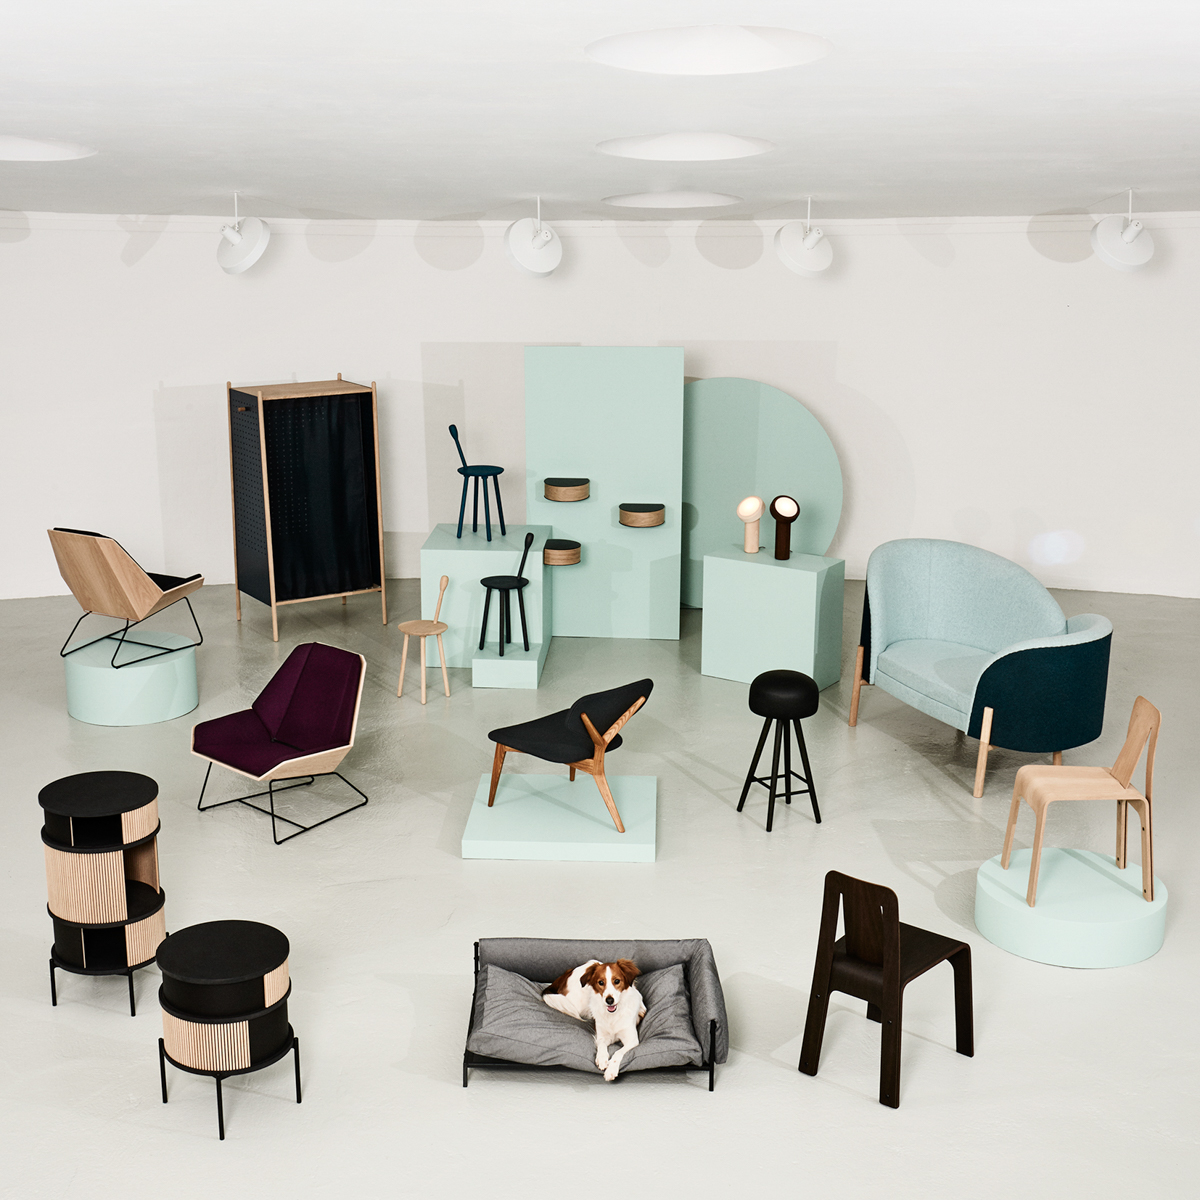 Via 39 s furniture students exhibit at stockholm design milk for Furniture exhibition